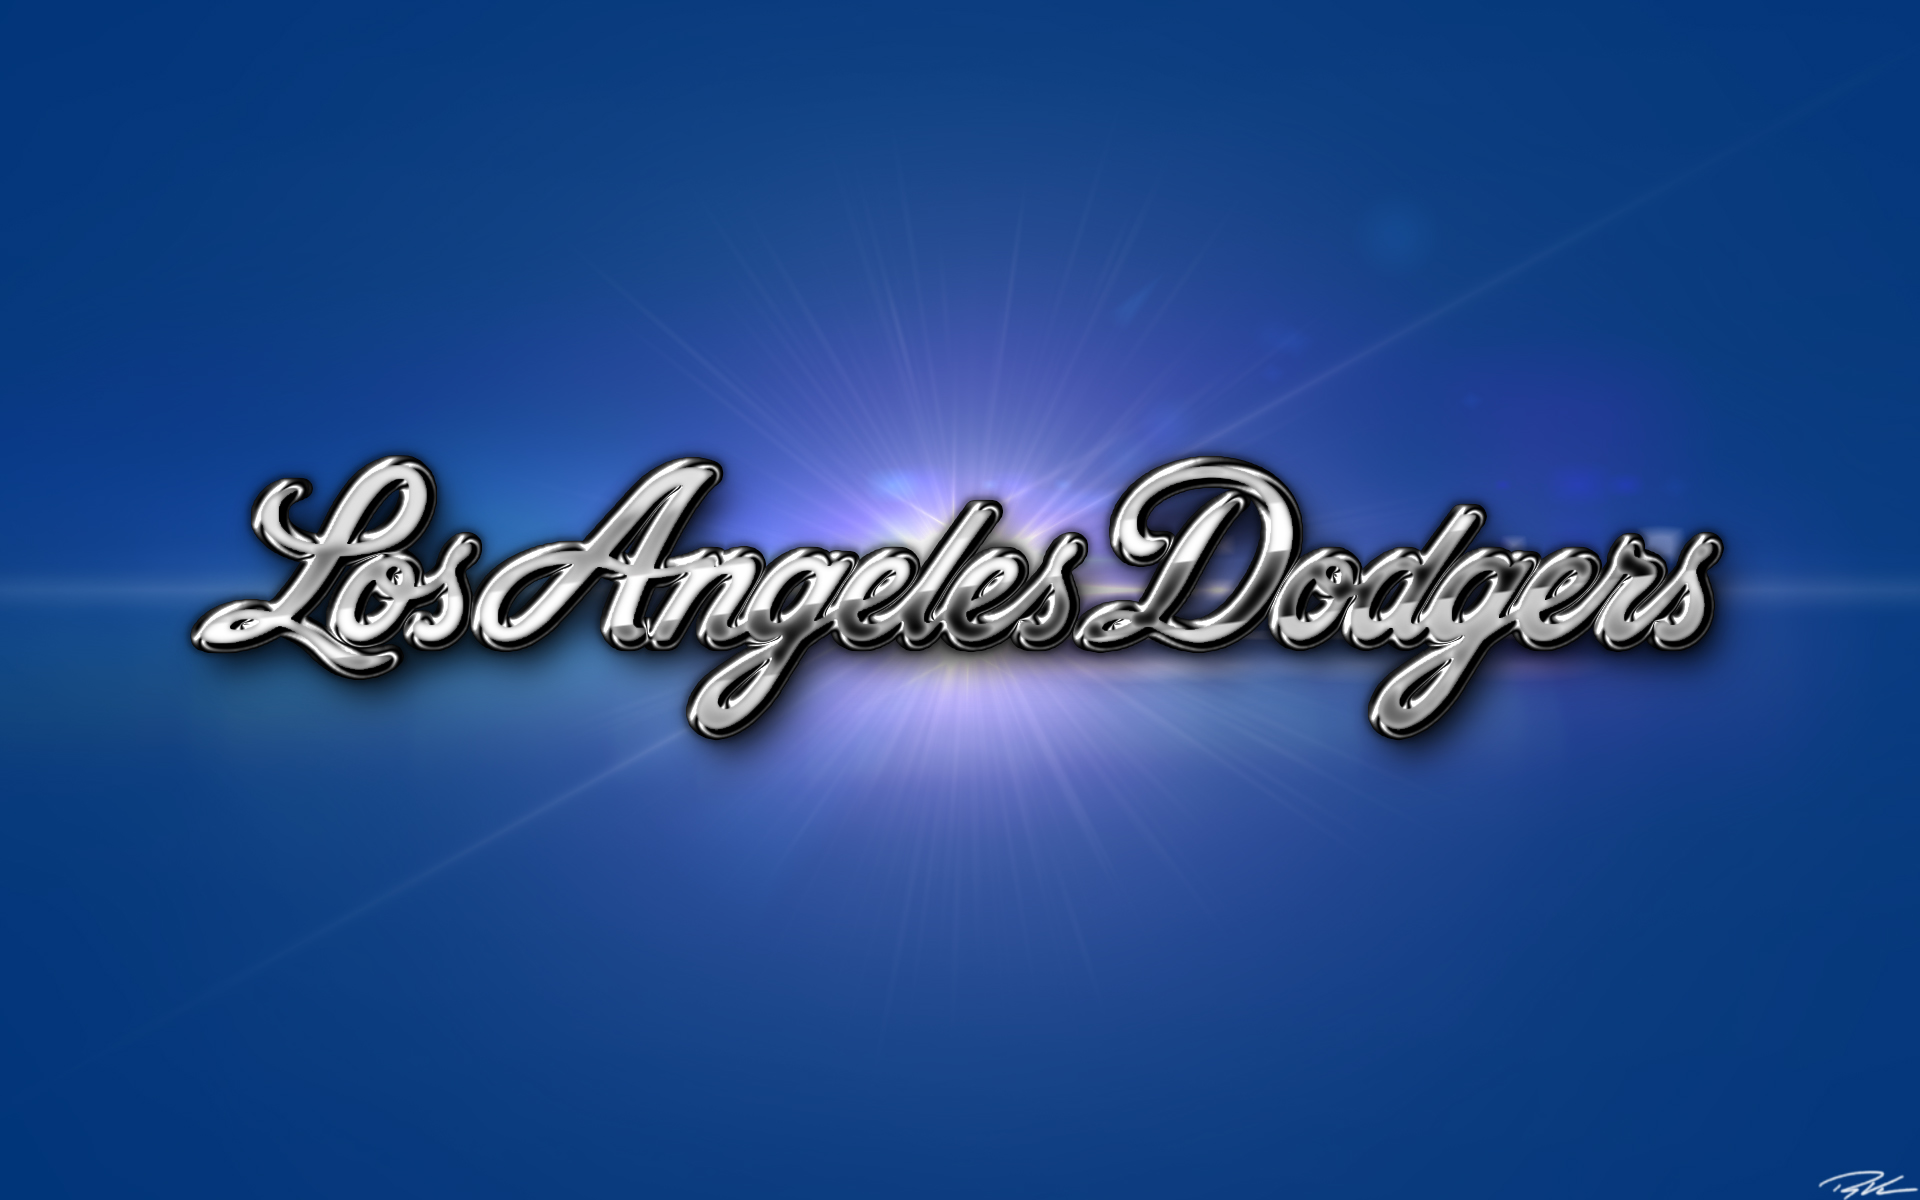 Los Angeles Dodgers Baseball Mlb Y Wallpaper 1920x1200 158579 Wallpaperup